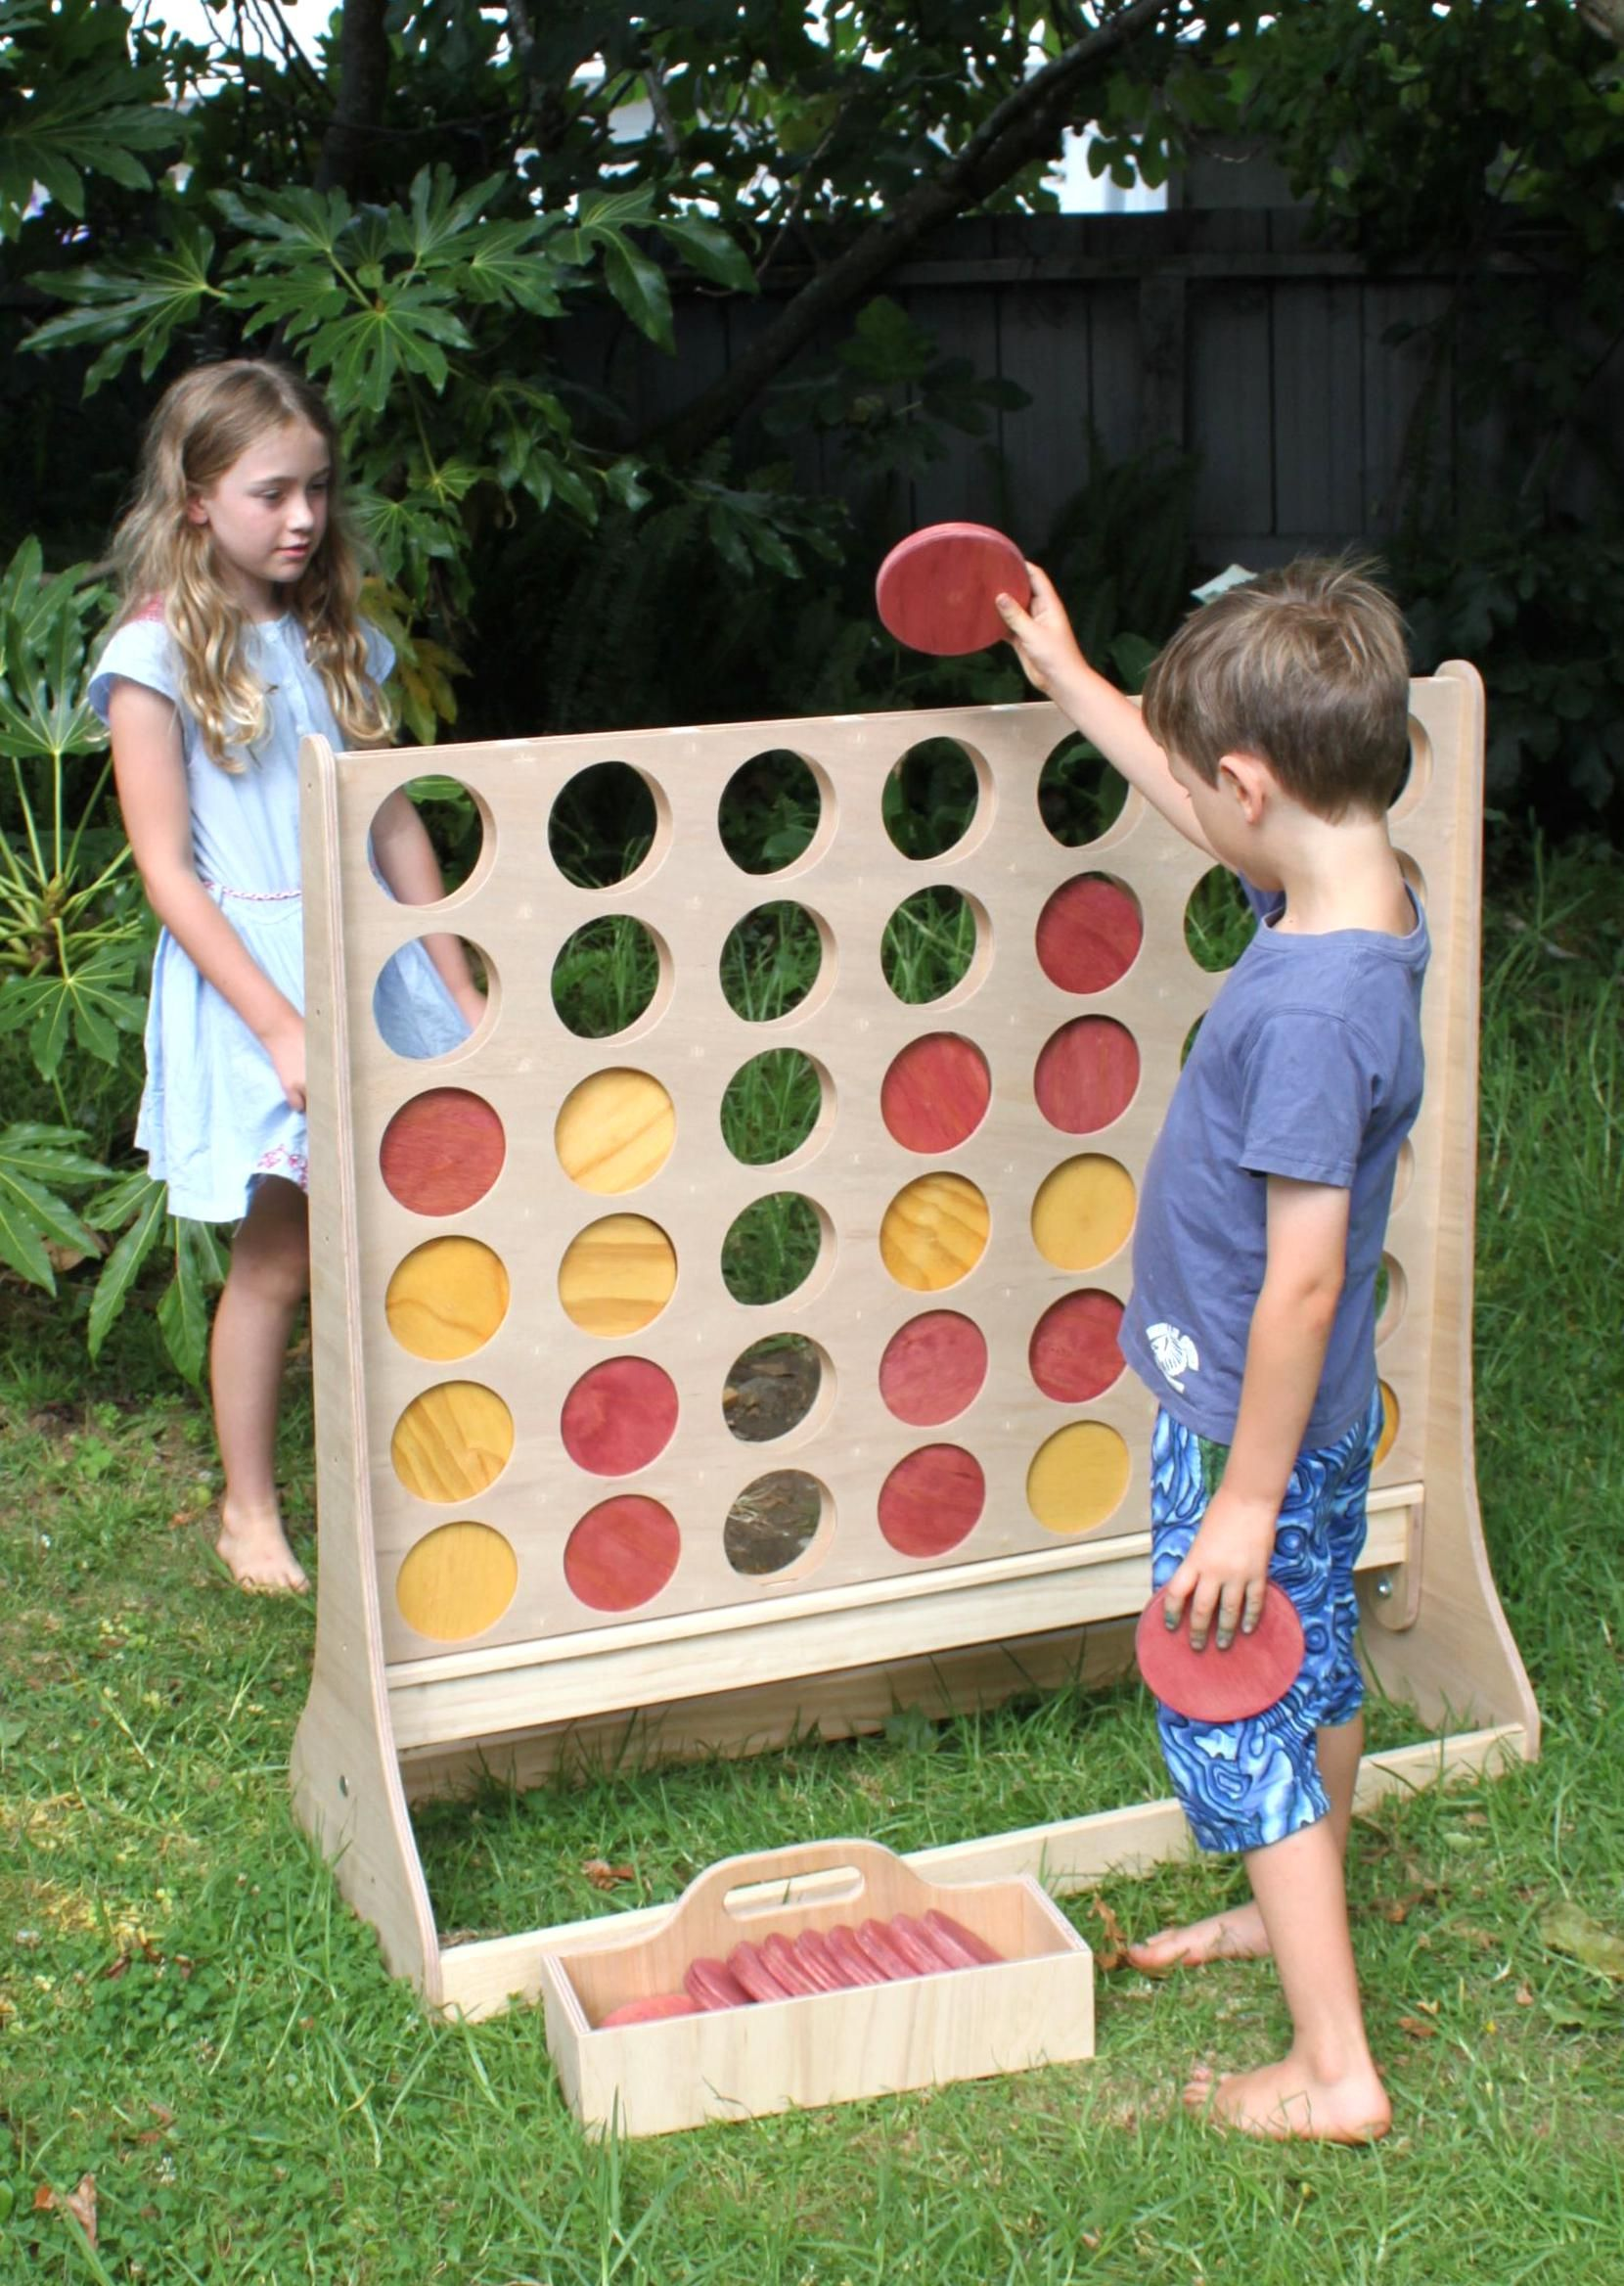 Giant Games For Hire Auckland Wide For Weddingsevents Beautiful Wooden Giant Connect 4 Giant Jenga Vintage And Trad In 2020 Wooden Games Wooden Board Games Giant Games